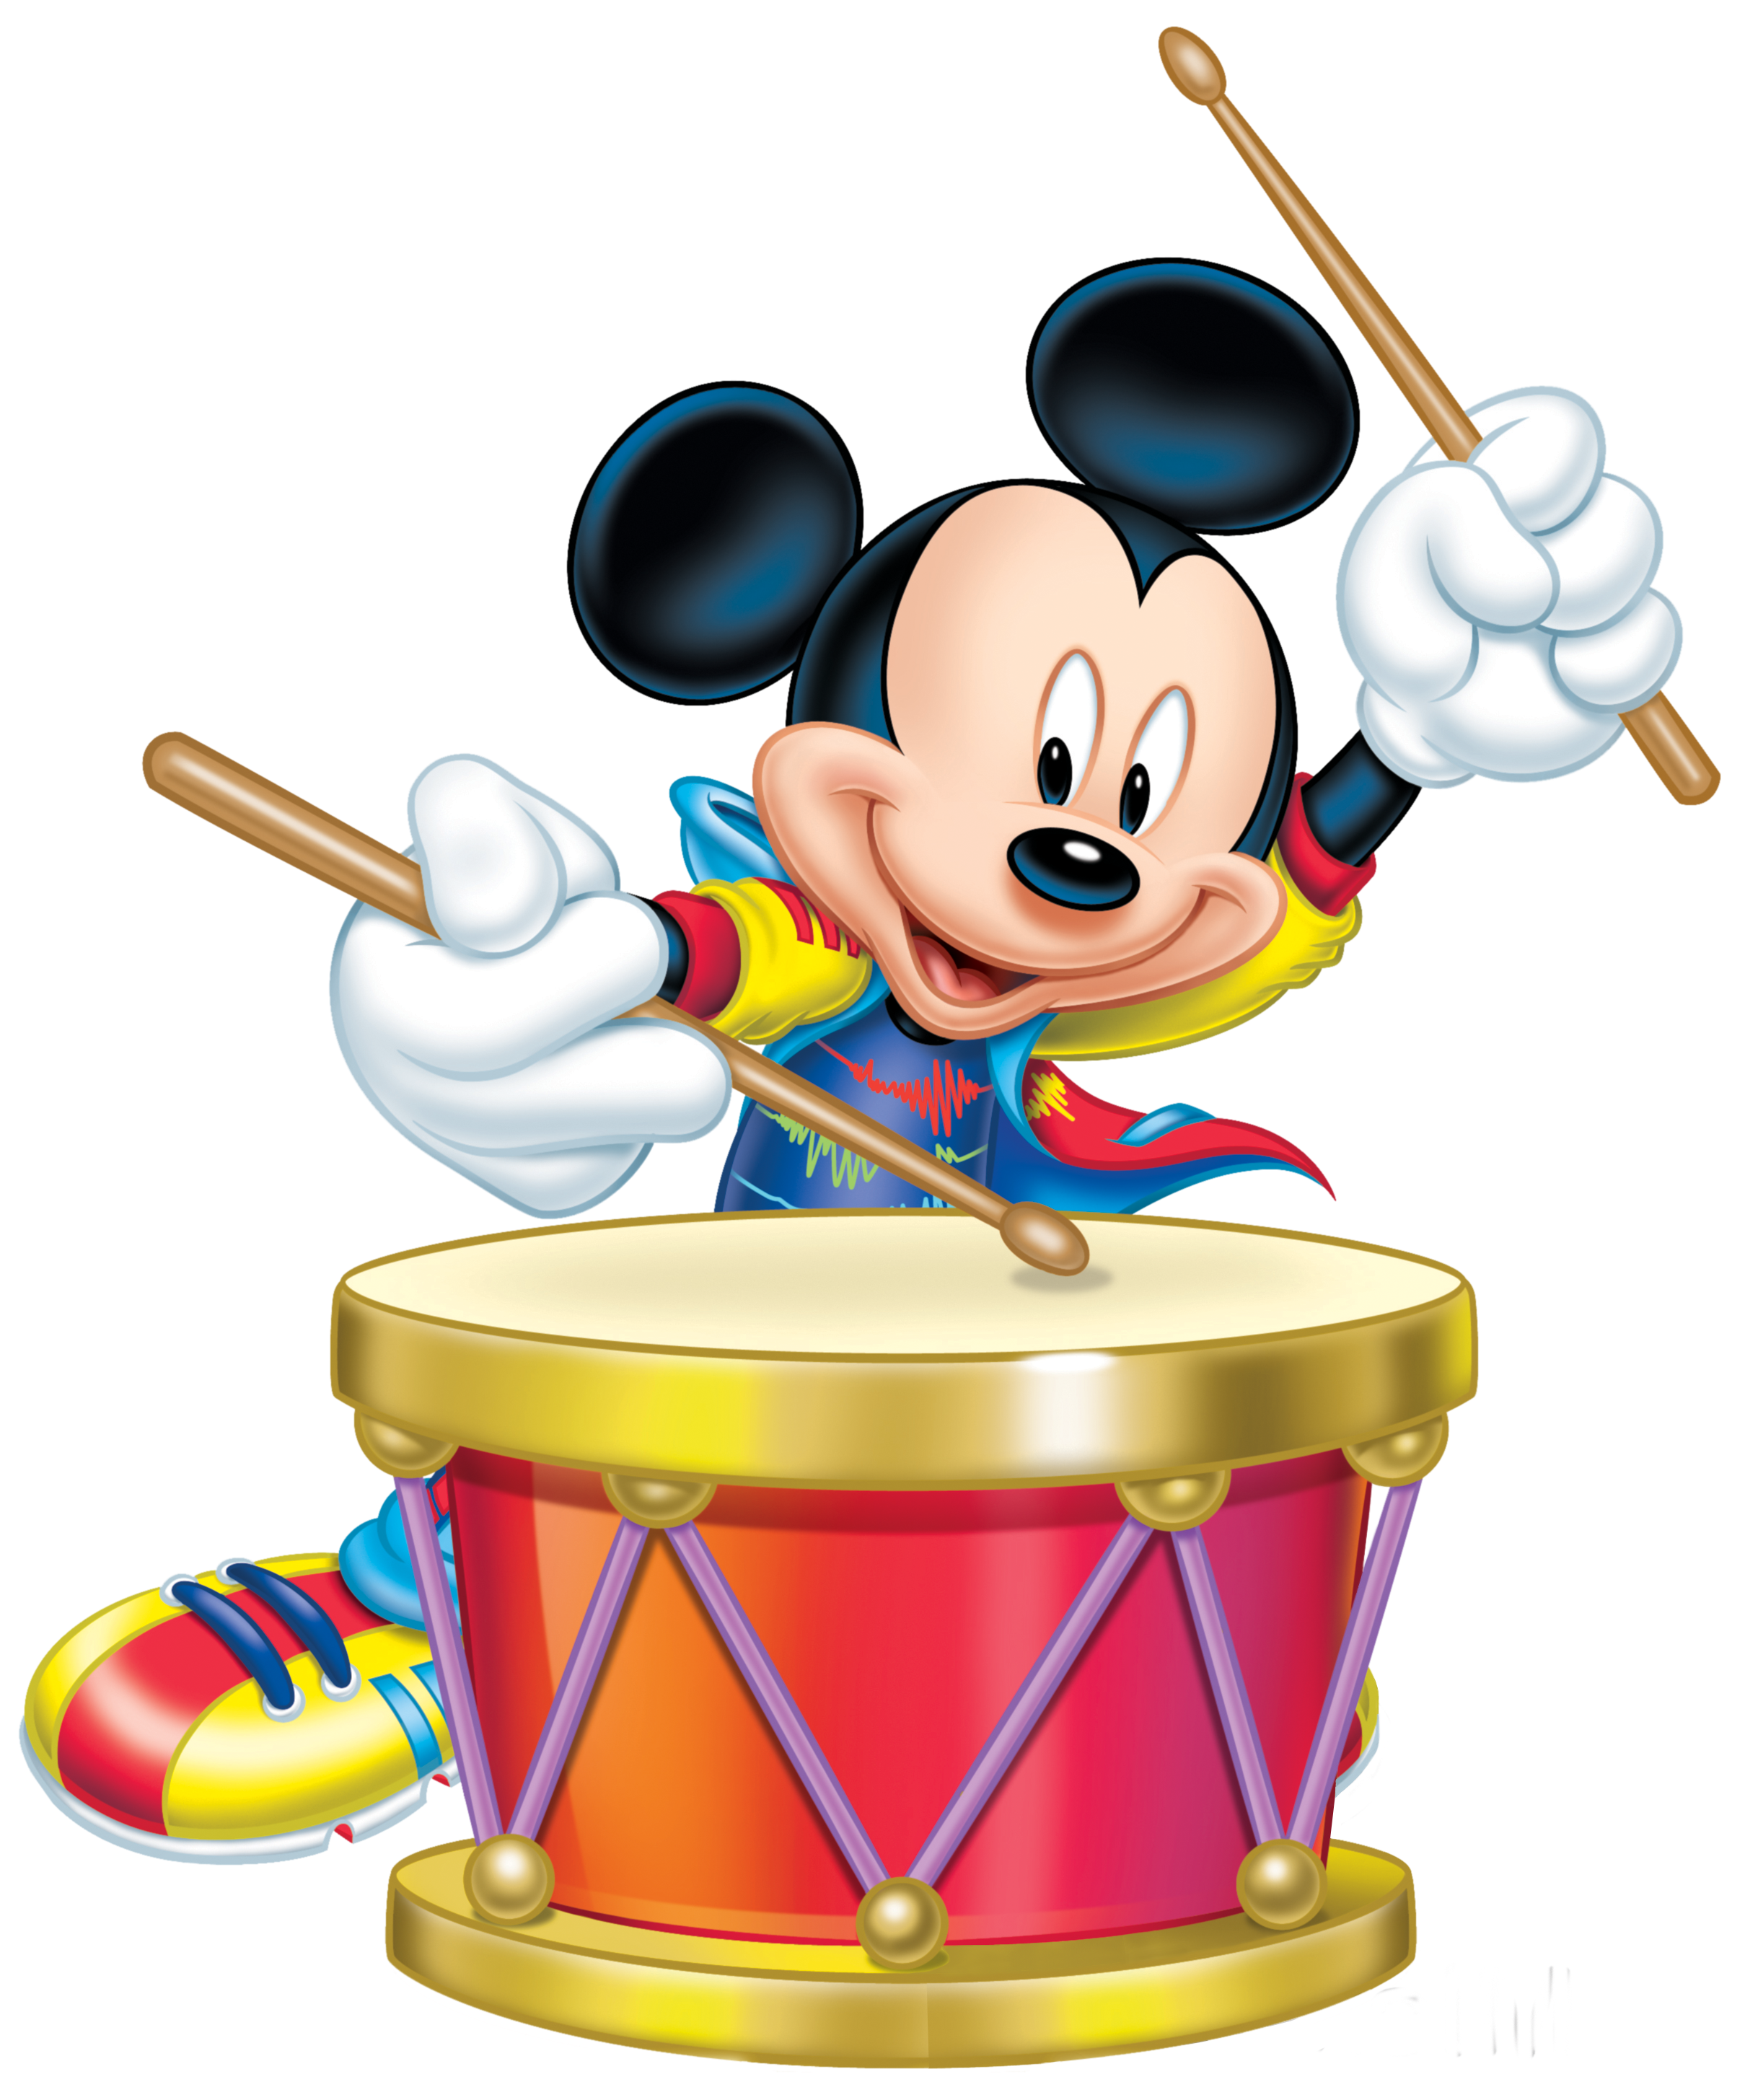 1 clipart mickey mouse. Clip art free download